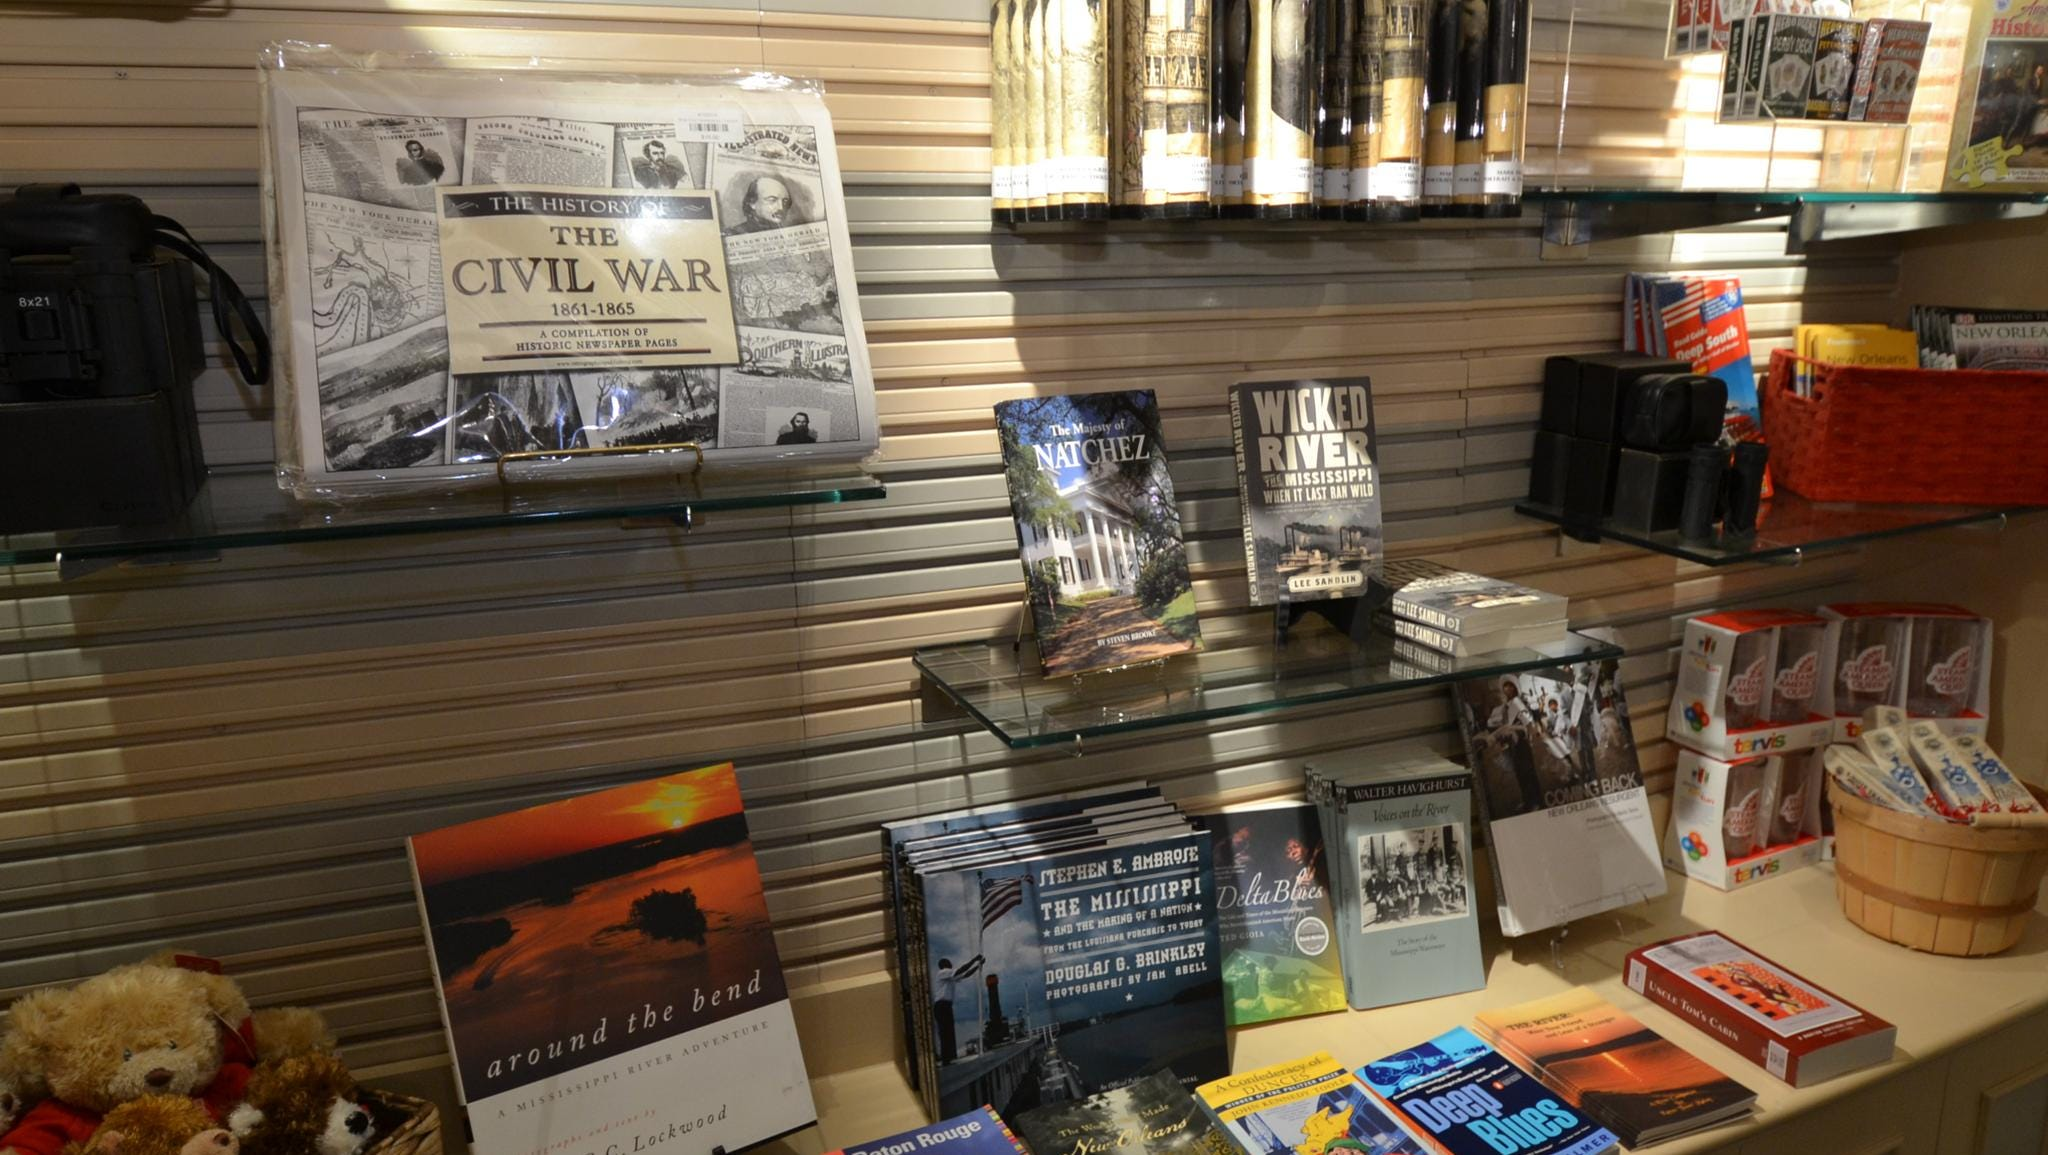 Books about the history of steamboats and America's waterways are available in the A.Q. Emporium store.